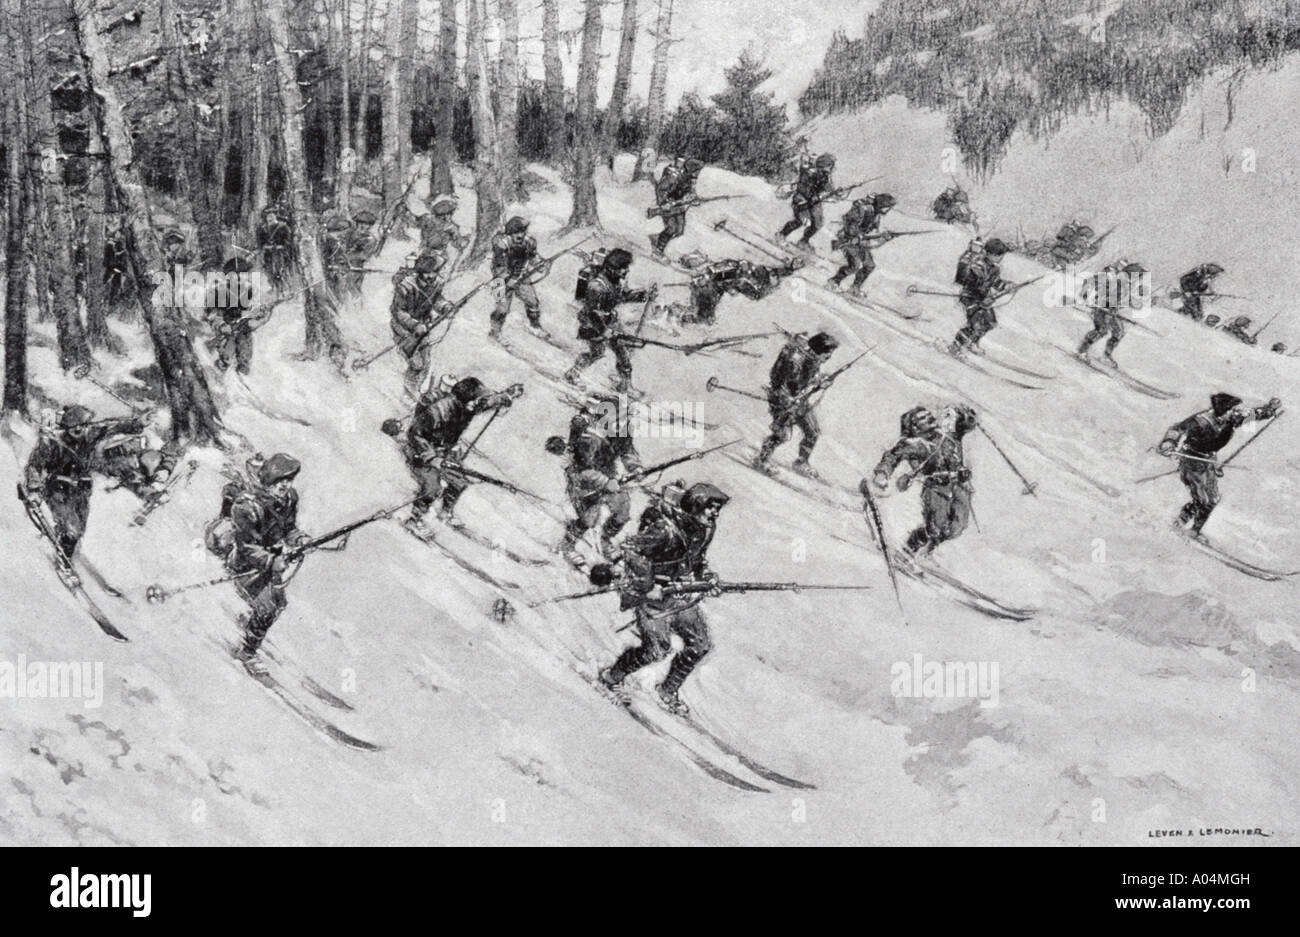 French Alpine troops attacking on skis during World War One from L Illustration magazine 1915 Artist Lever Lemonier - Stock Image